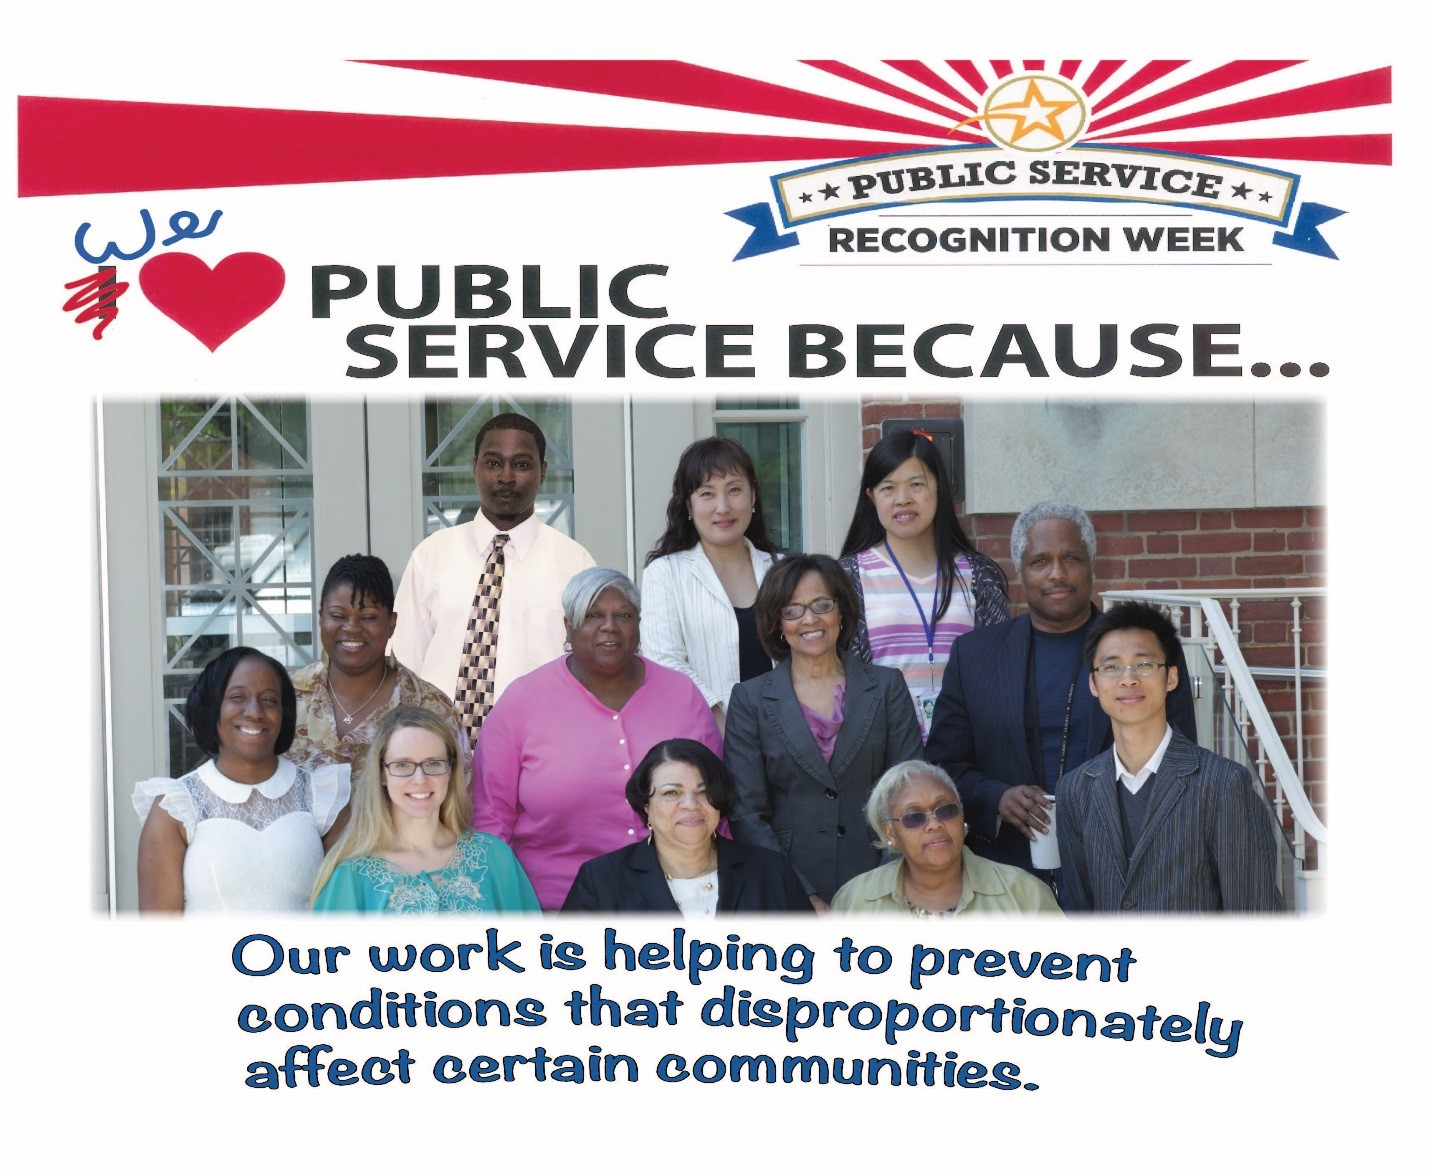 NIMHD Intramural Research Program staff during Public Service Recognition Week